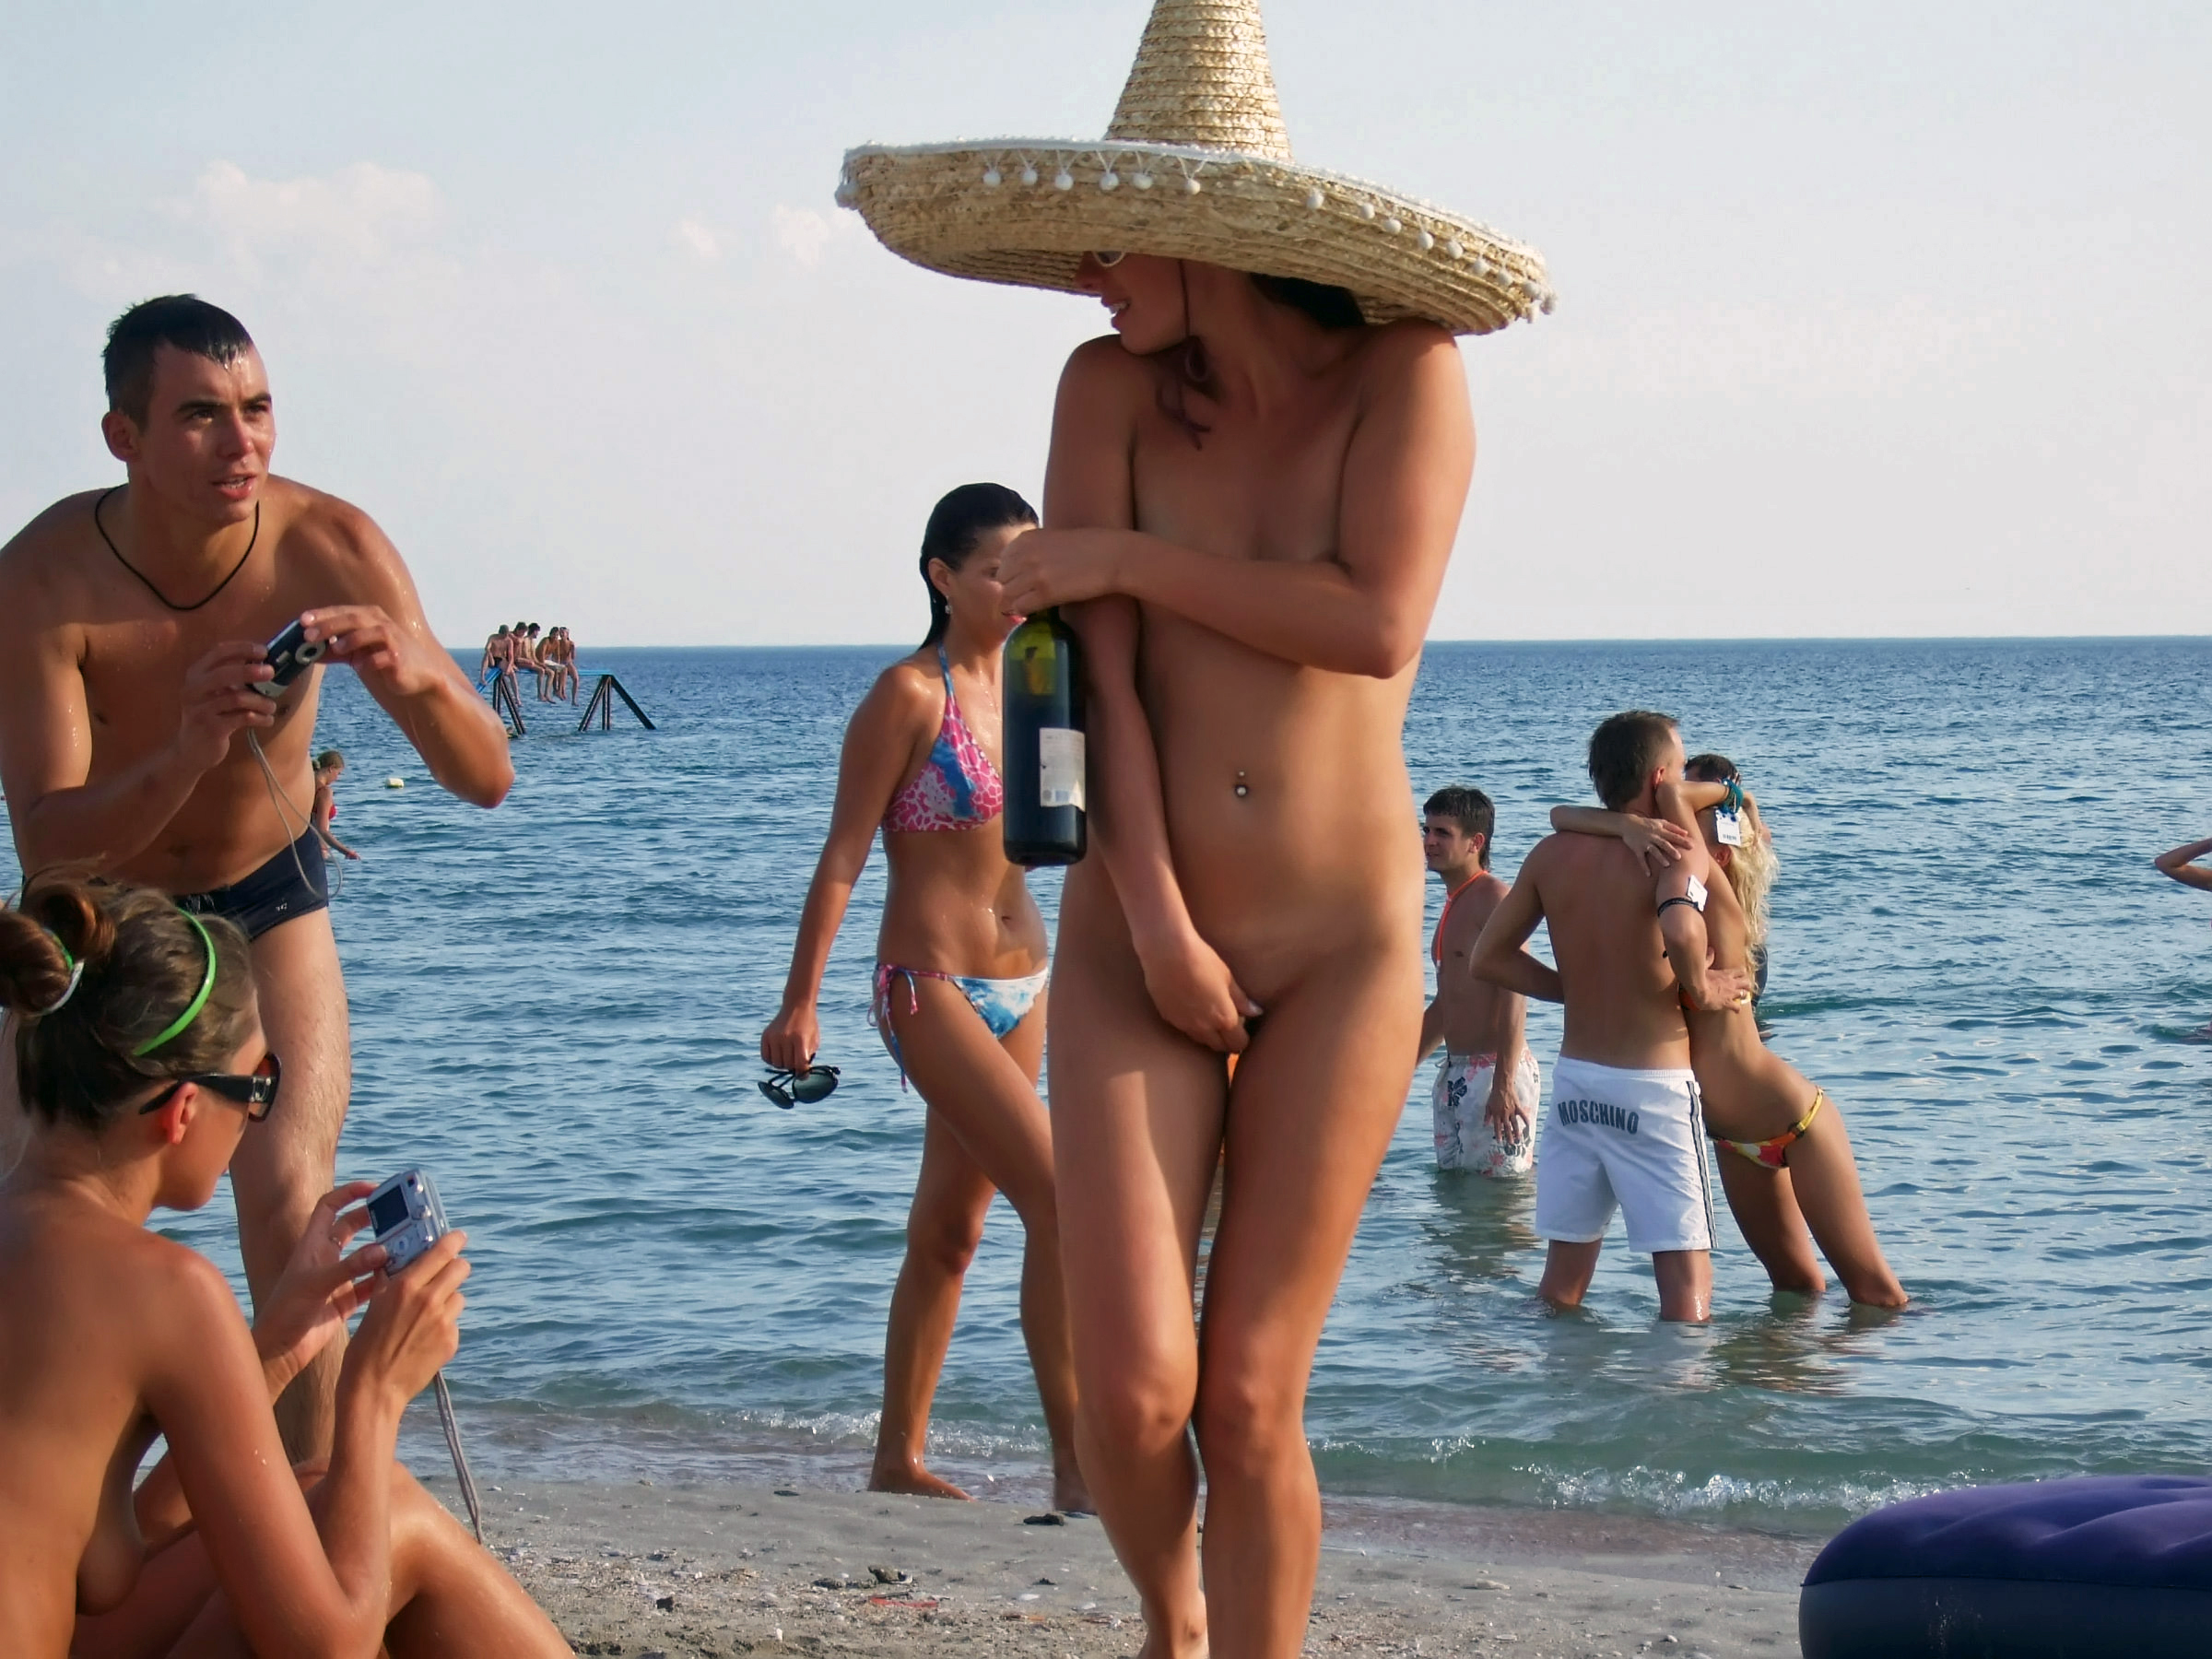 nude-beach-nudists-girls-mix-vol6-98